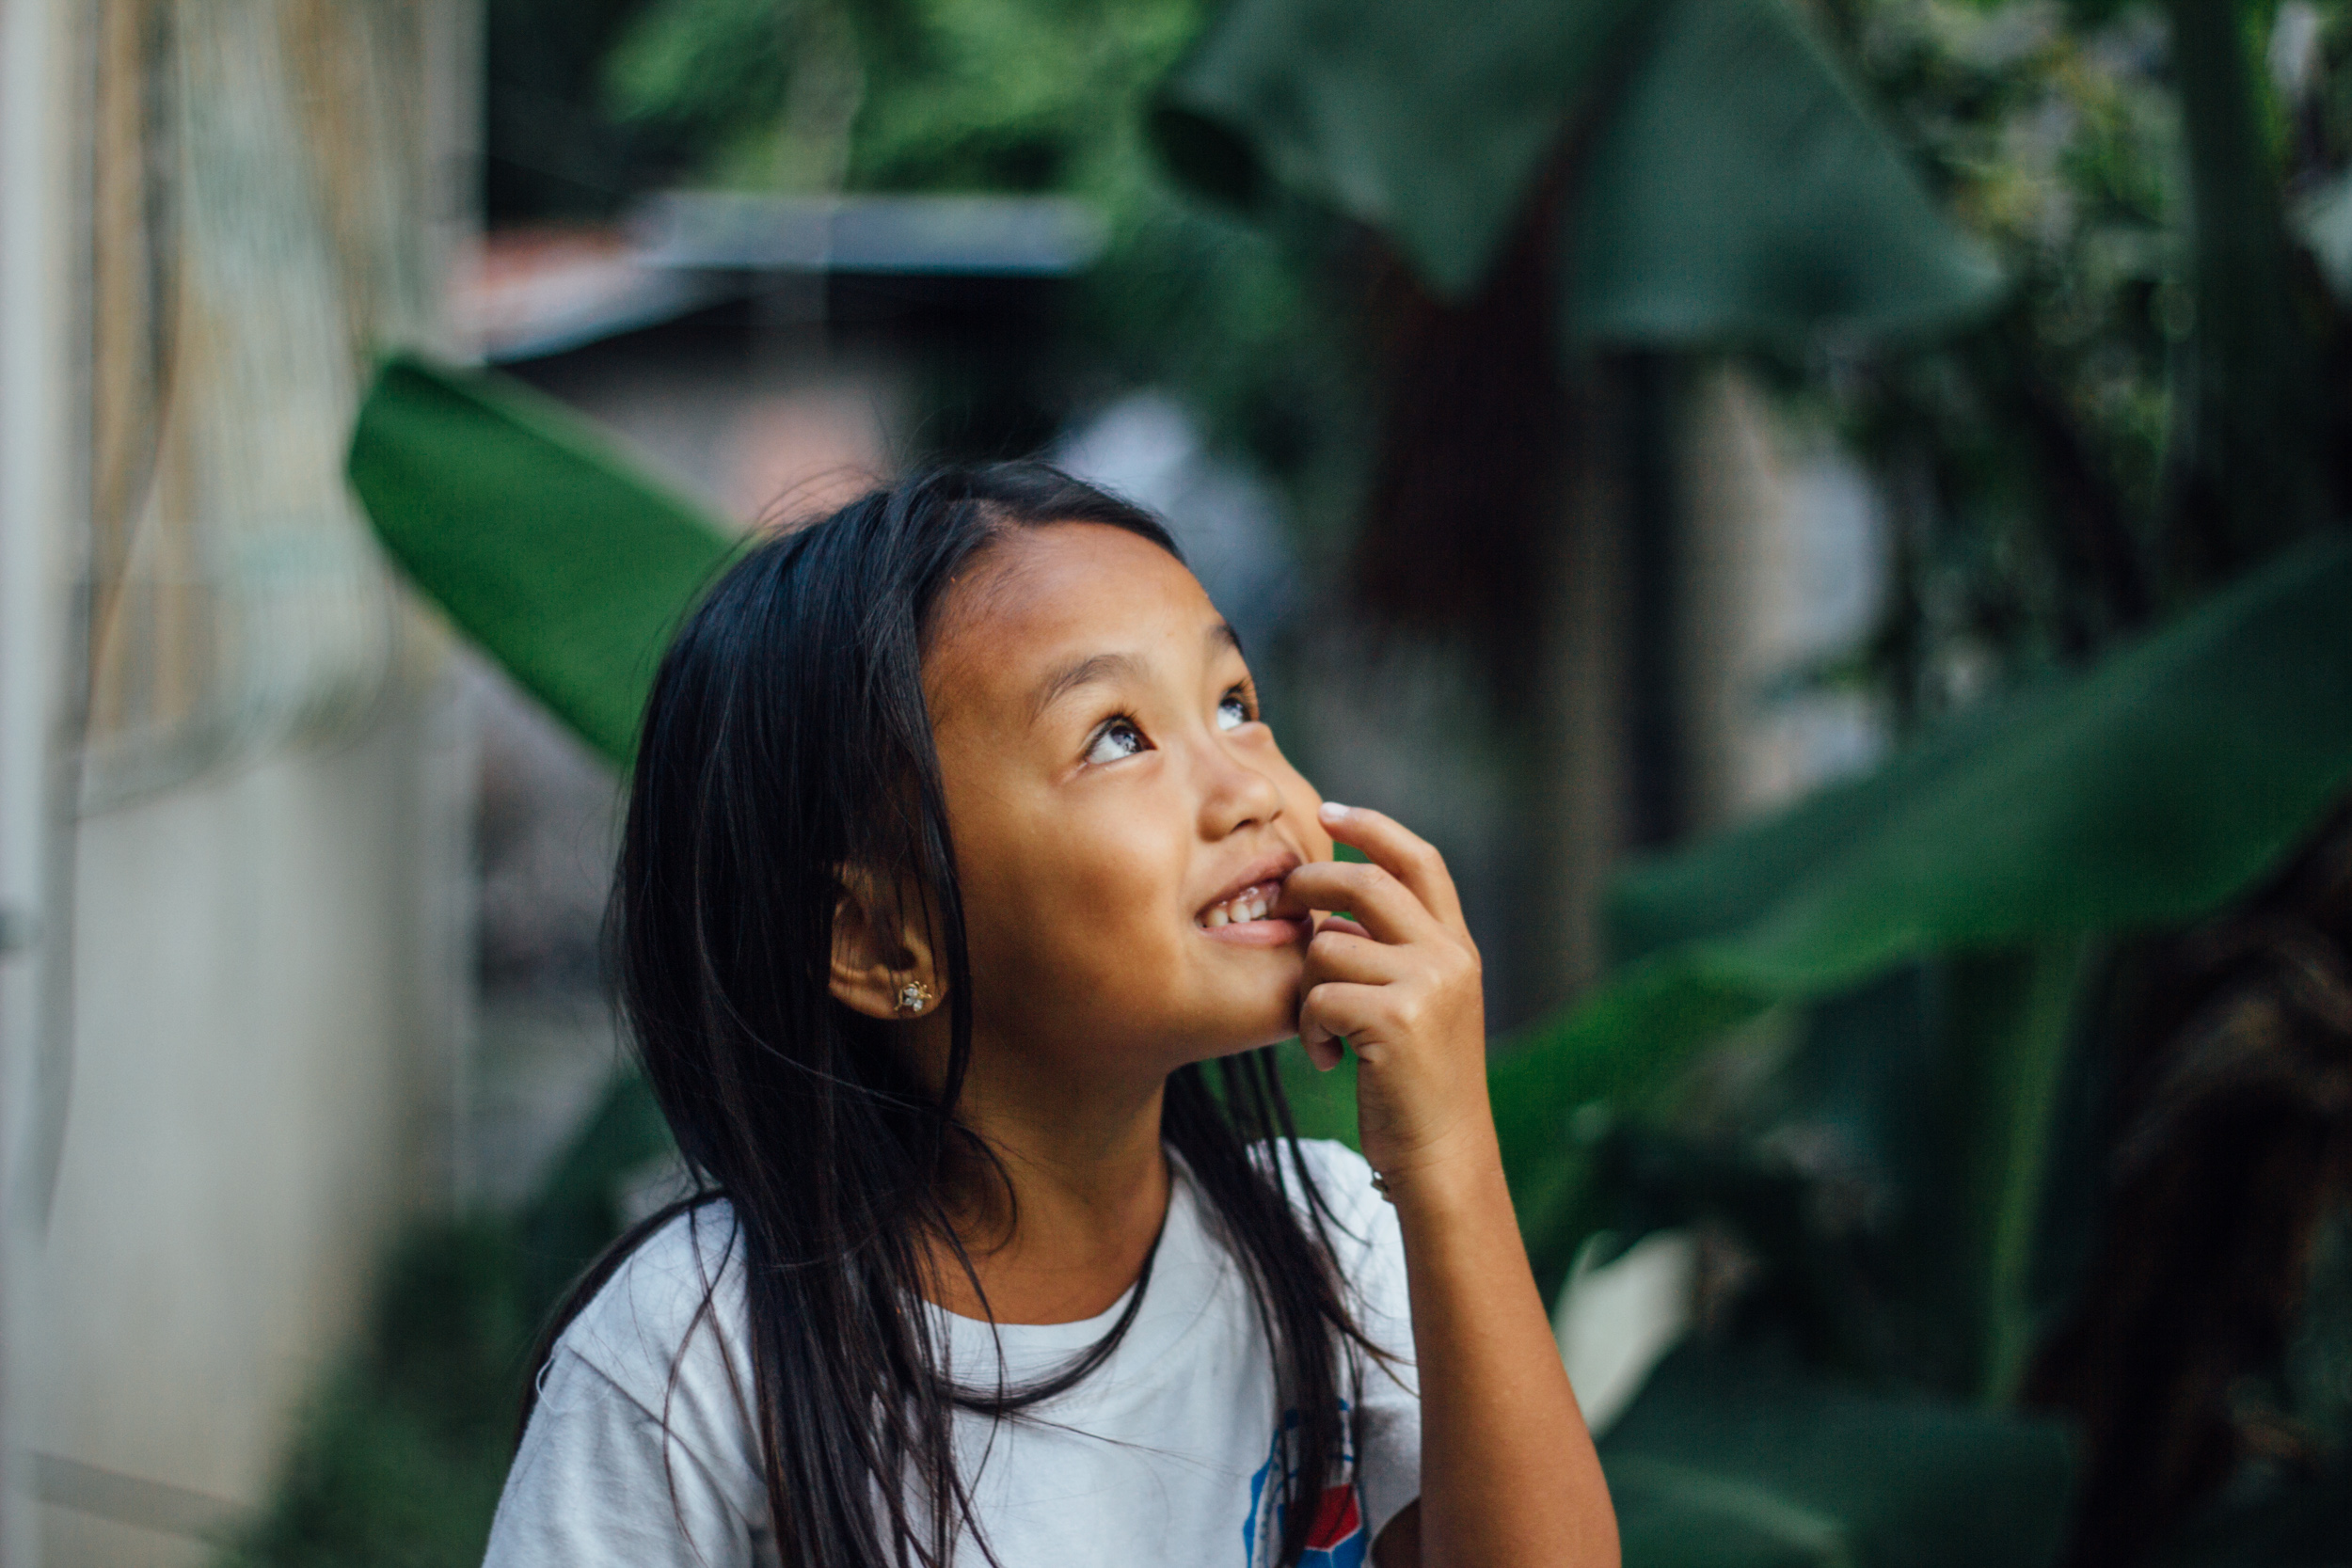 photo-philippines-kid-girl-Diana-Scalfati.jpg